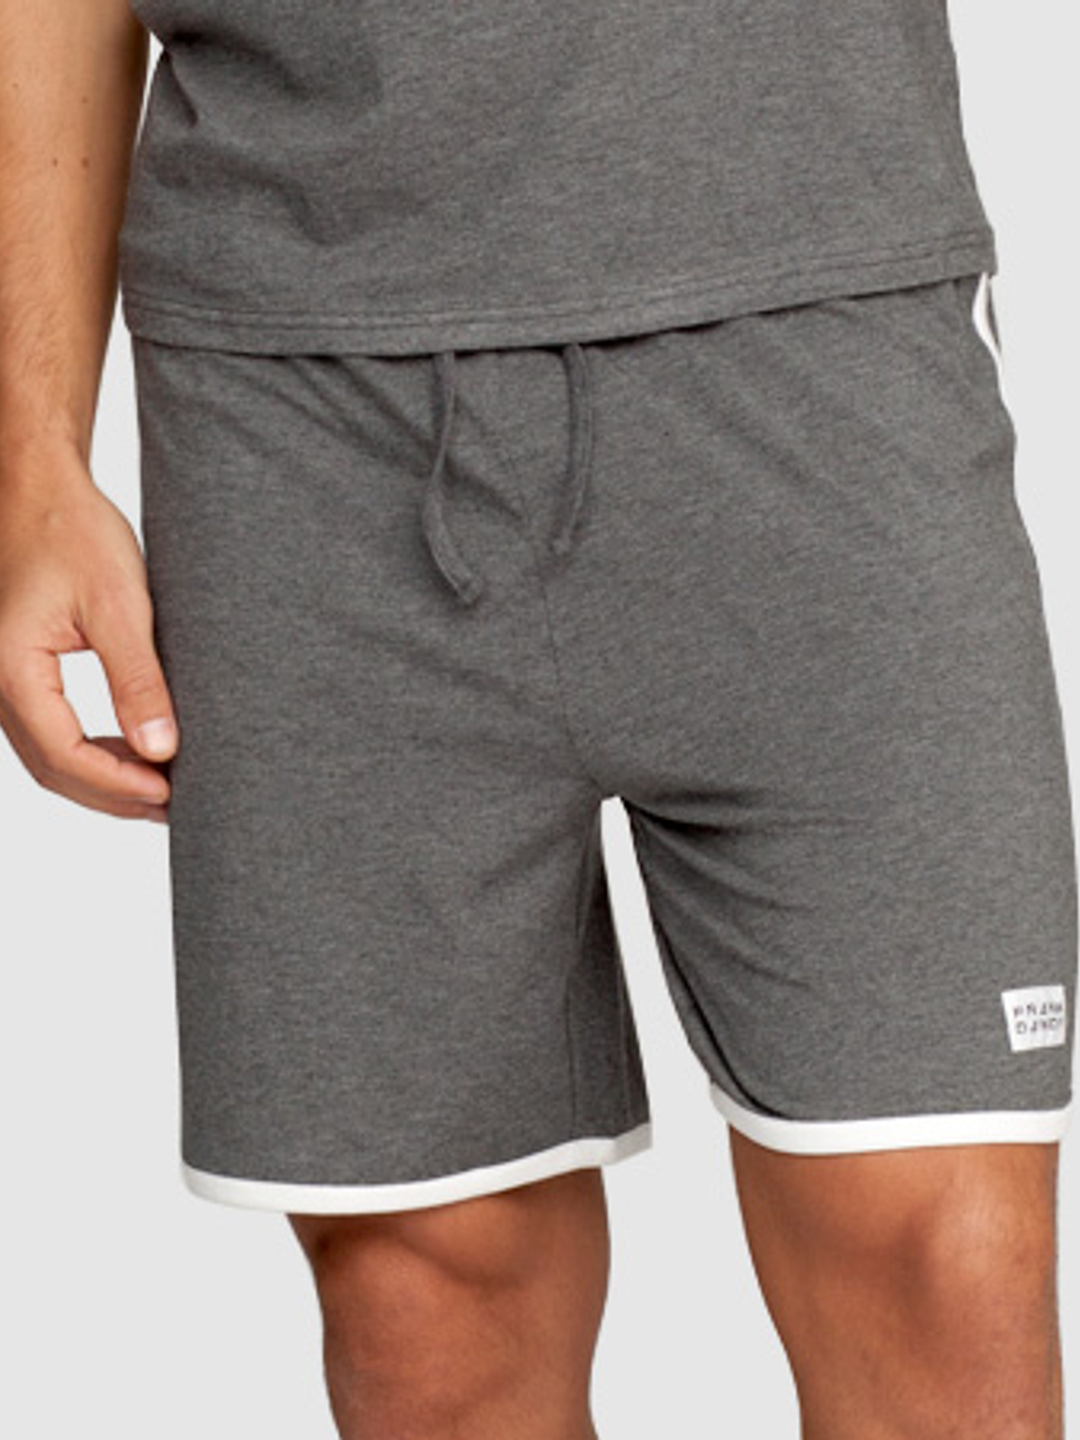 St Paul Bamboo Contrast shorts